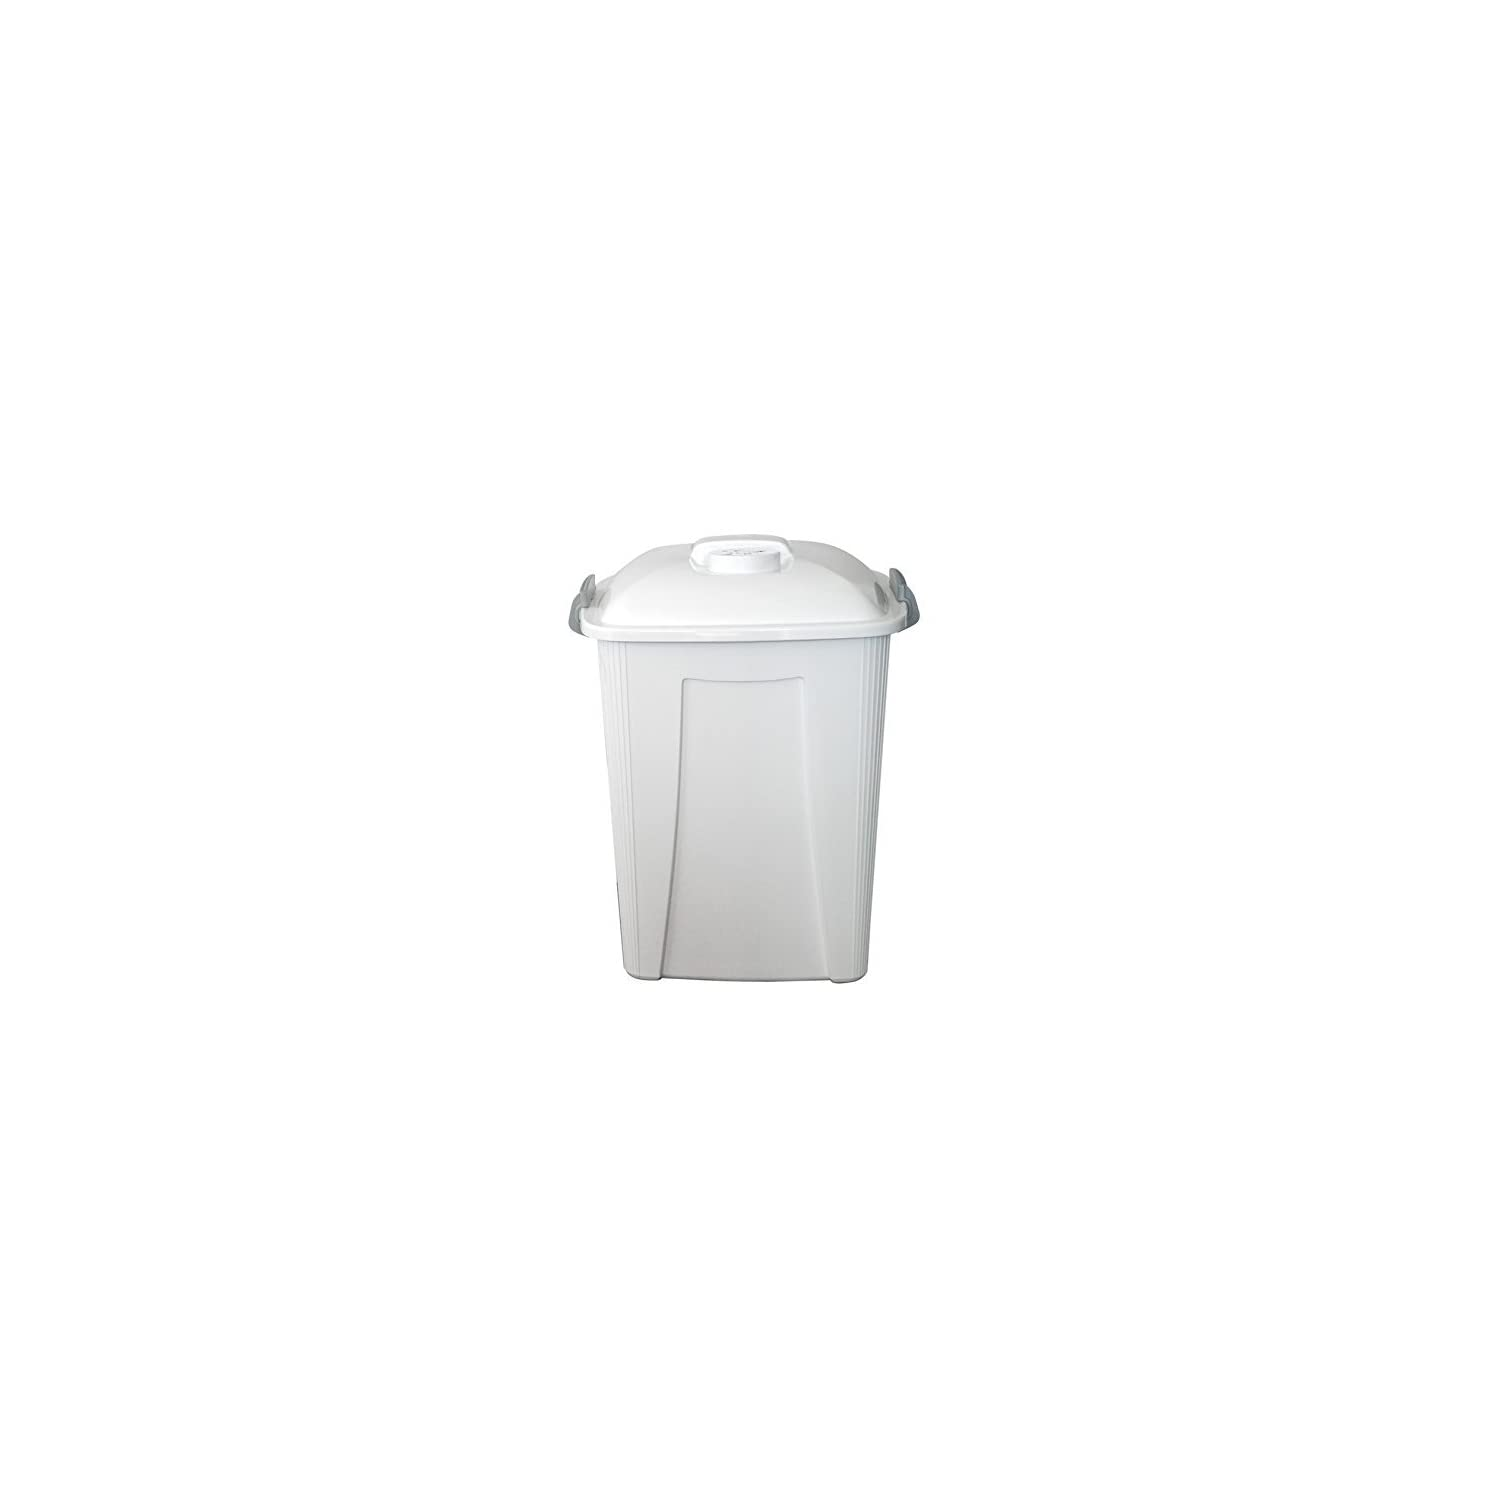 Odorless Cloth Diaper Pail (7 gallon: 1-2 days) by Busch Systems